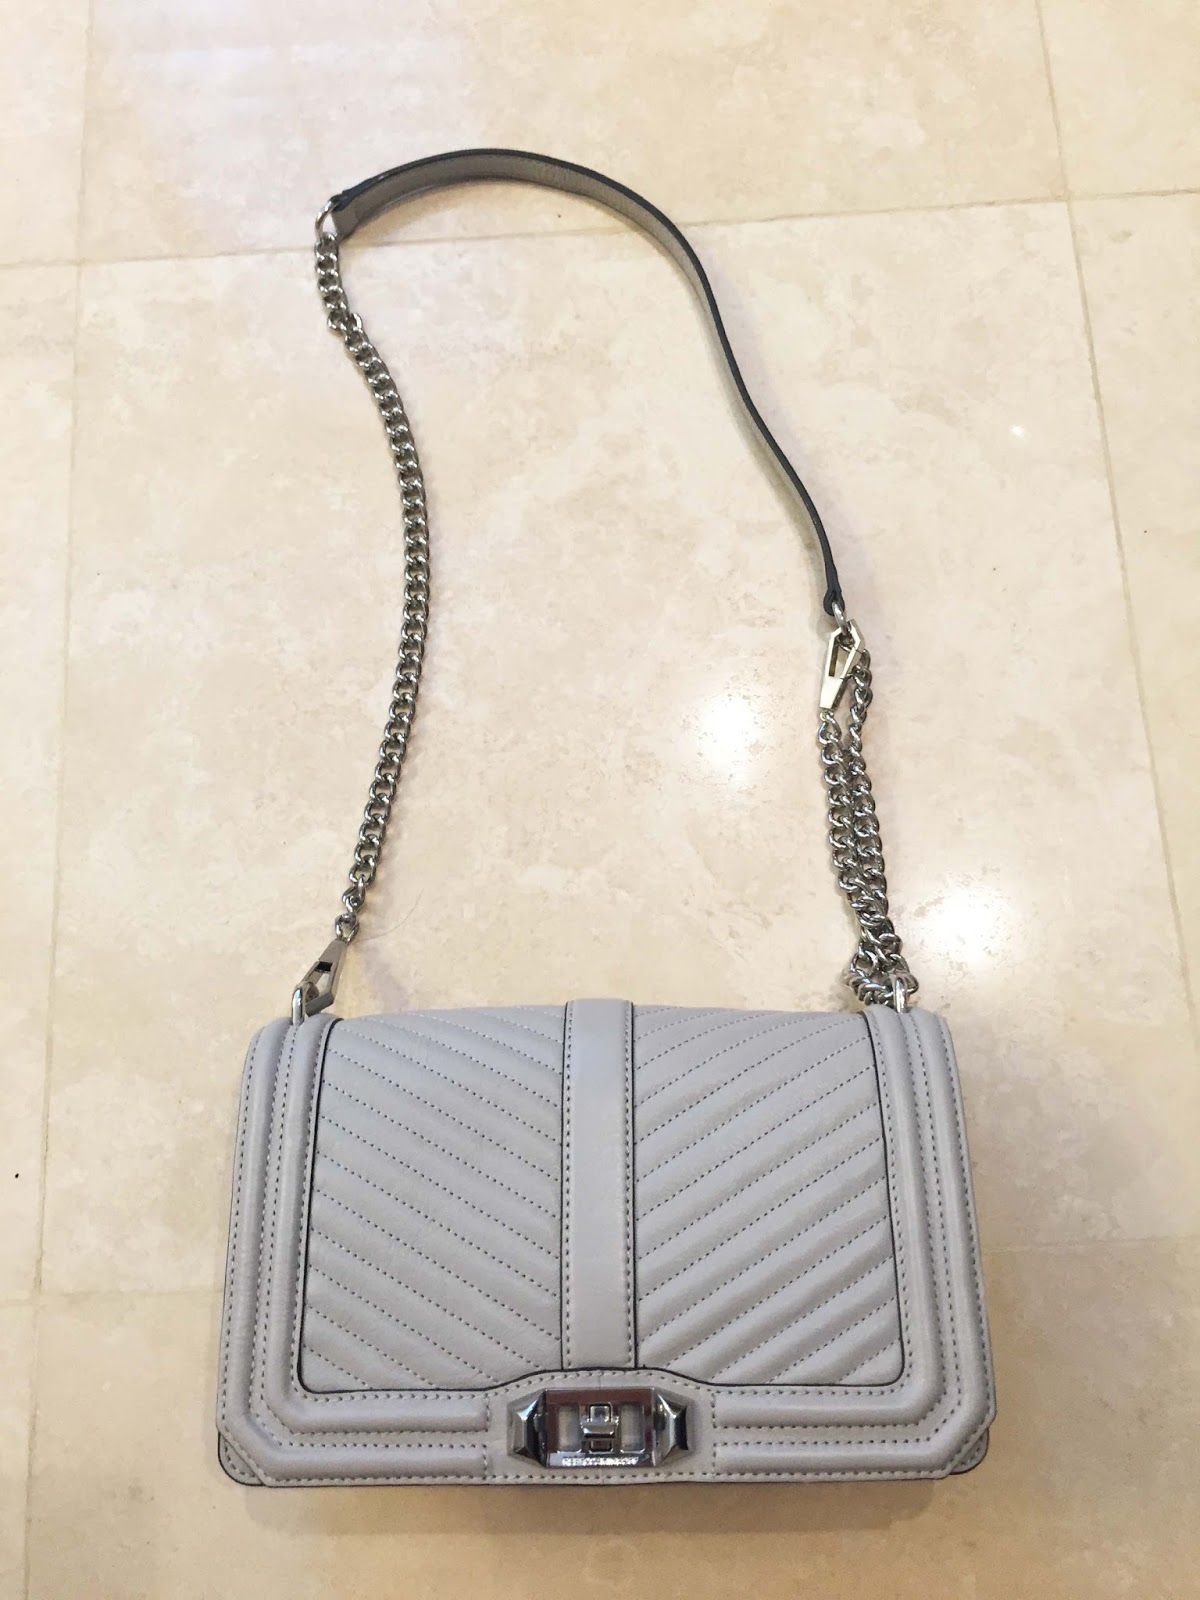 Visit Clearance Popular Rebecca Minkoff chevron quilted 'Love' bag Enjoy For Sale Cheap Sale Supply Factory Outlet Cheap Price X7fywxm